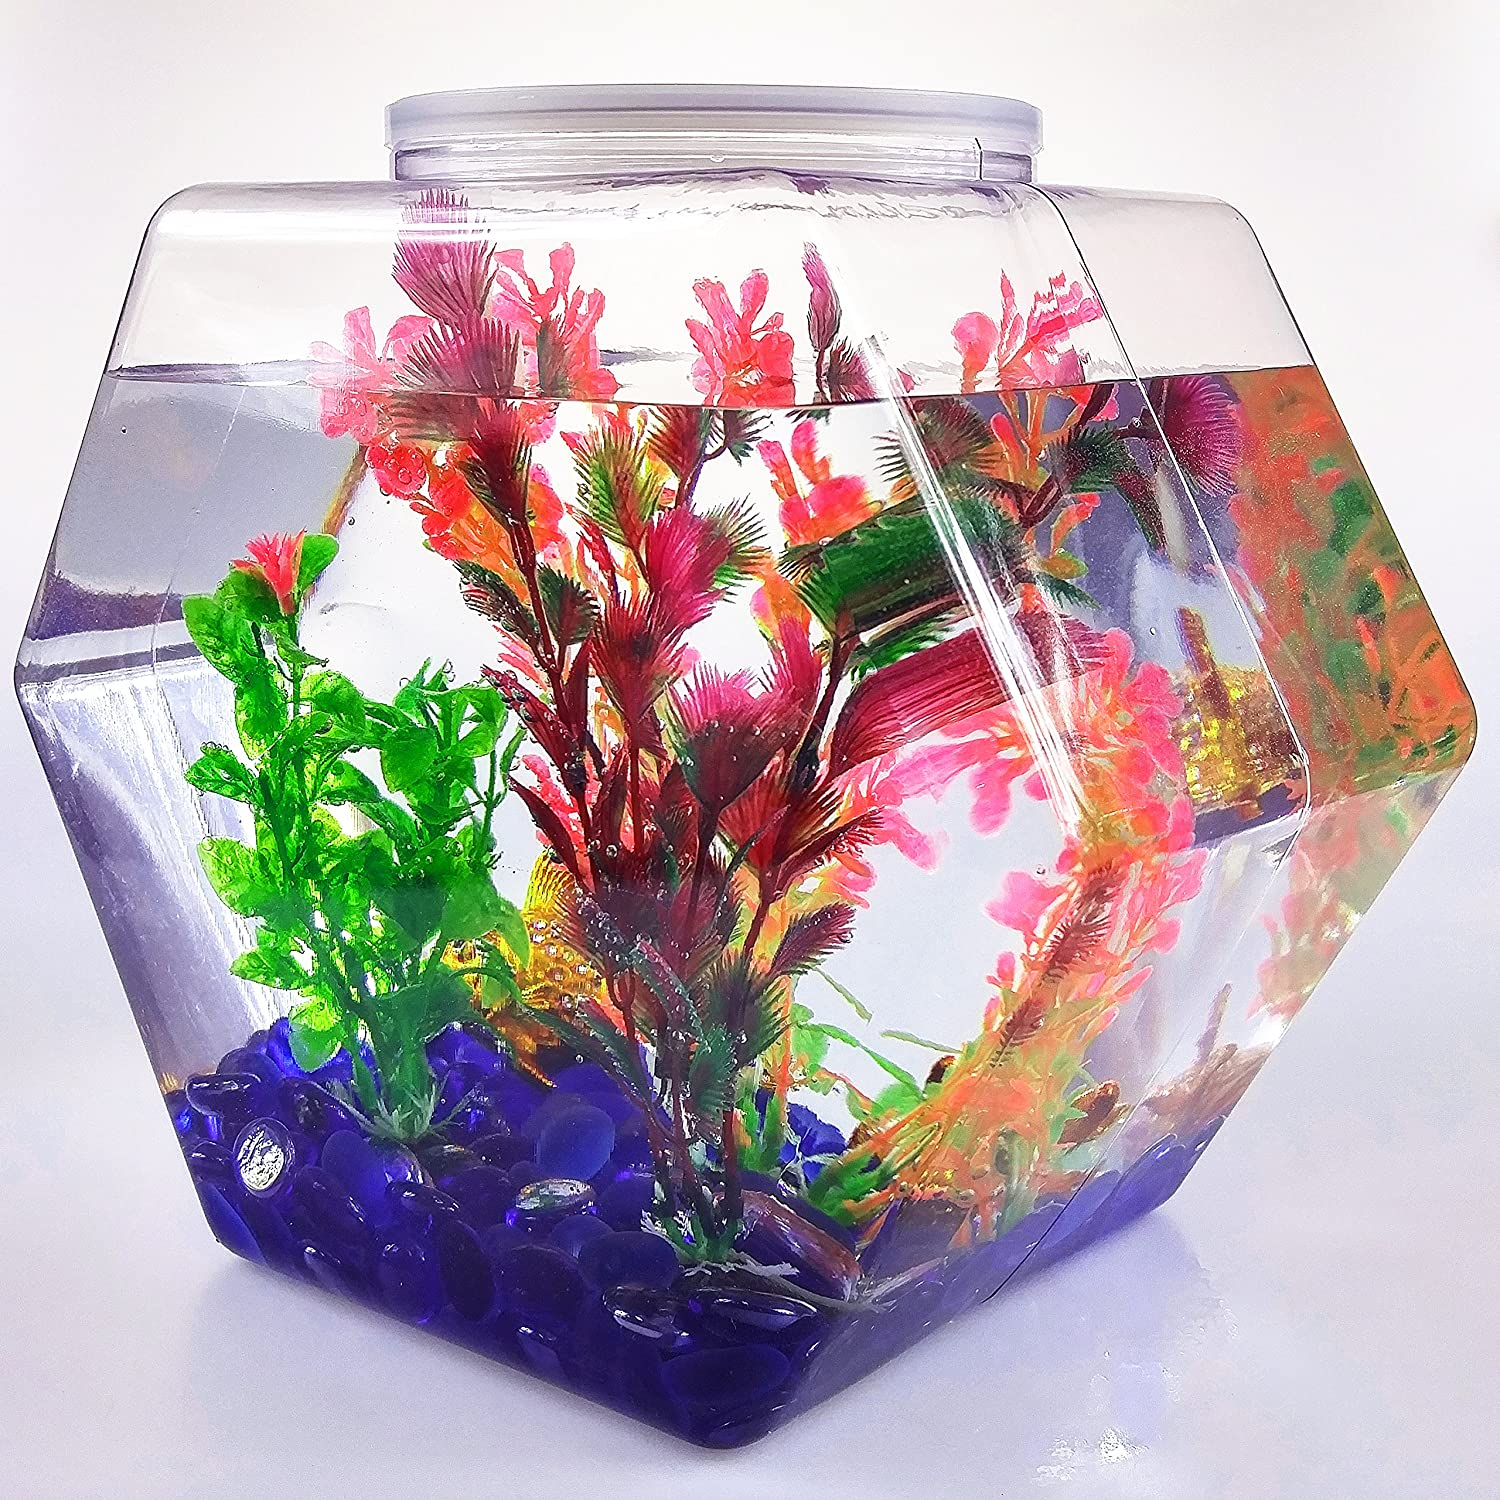 BestPolybag High Clarity Bulk Plastic Fish Bowl Hexagons, BPA-Free, Made in USA, 1/1.5/2.7-Gallon Size, One Case